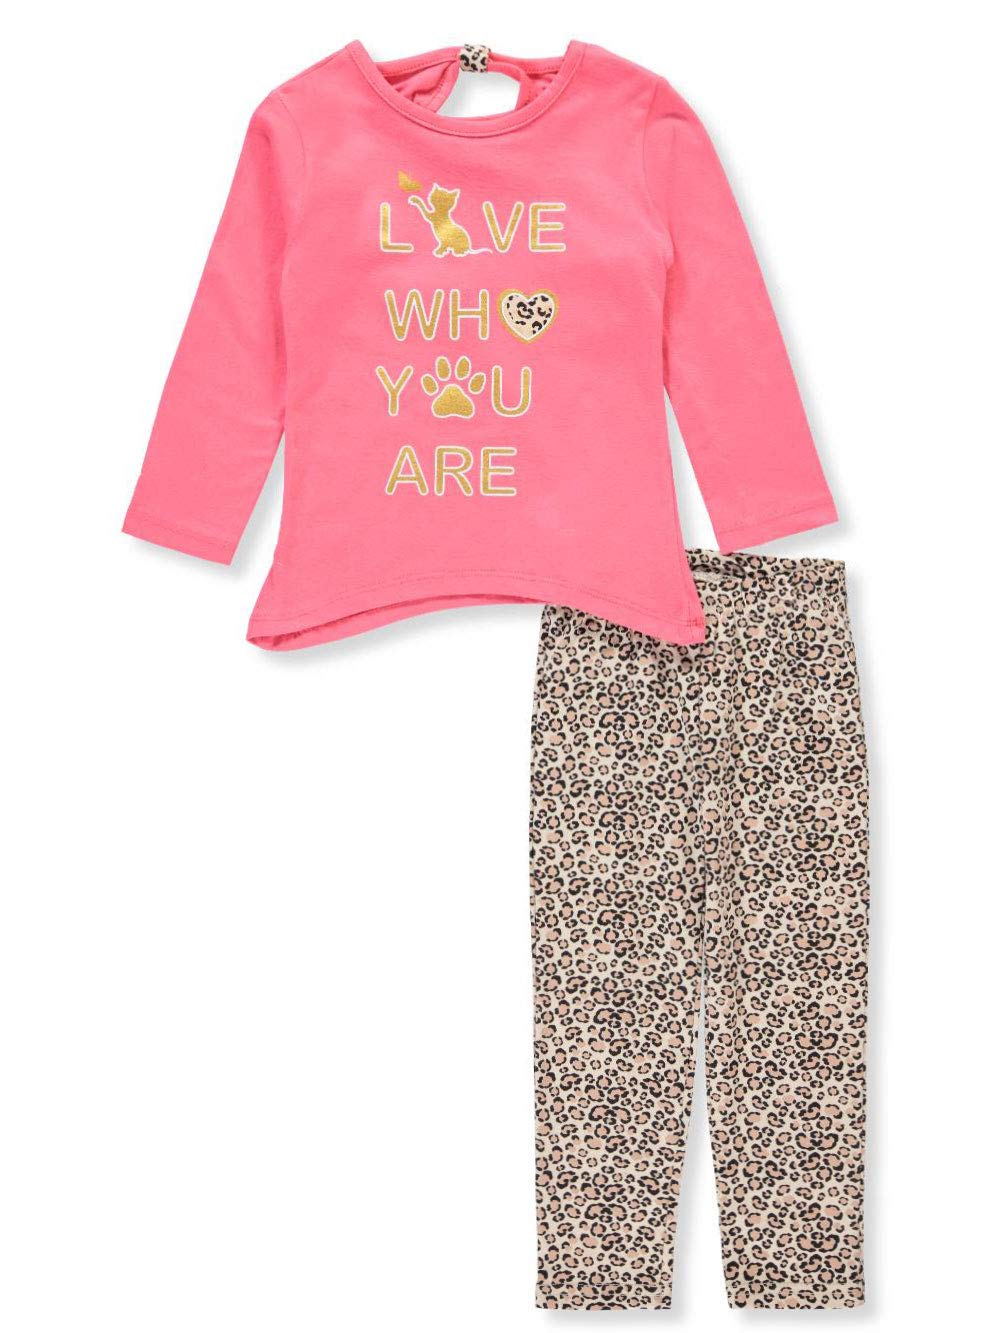 Real Love Little Girls' 2-Piece Leggings Set Outfit - Coral/Multi, 4